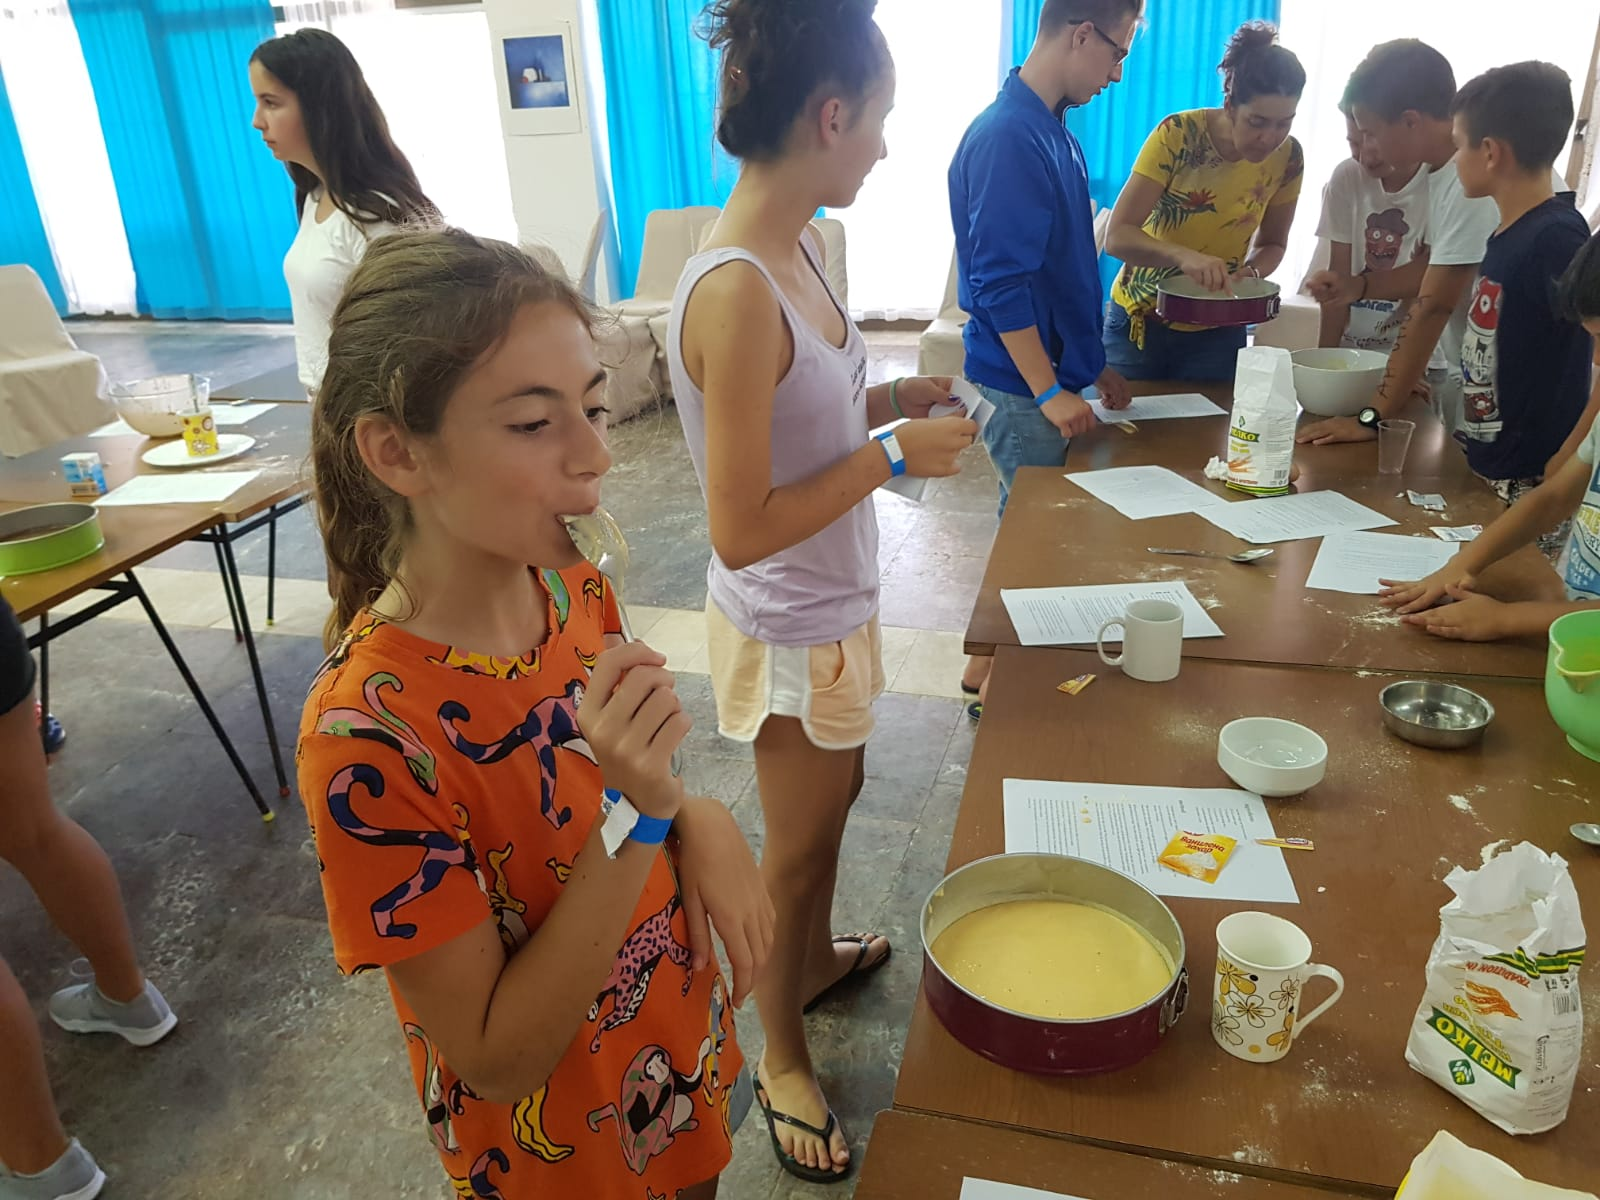 Z camp, day 8 - Making a cake, a table of products and a girl trying the dough